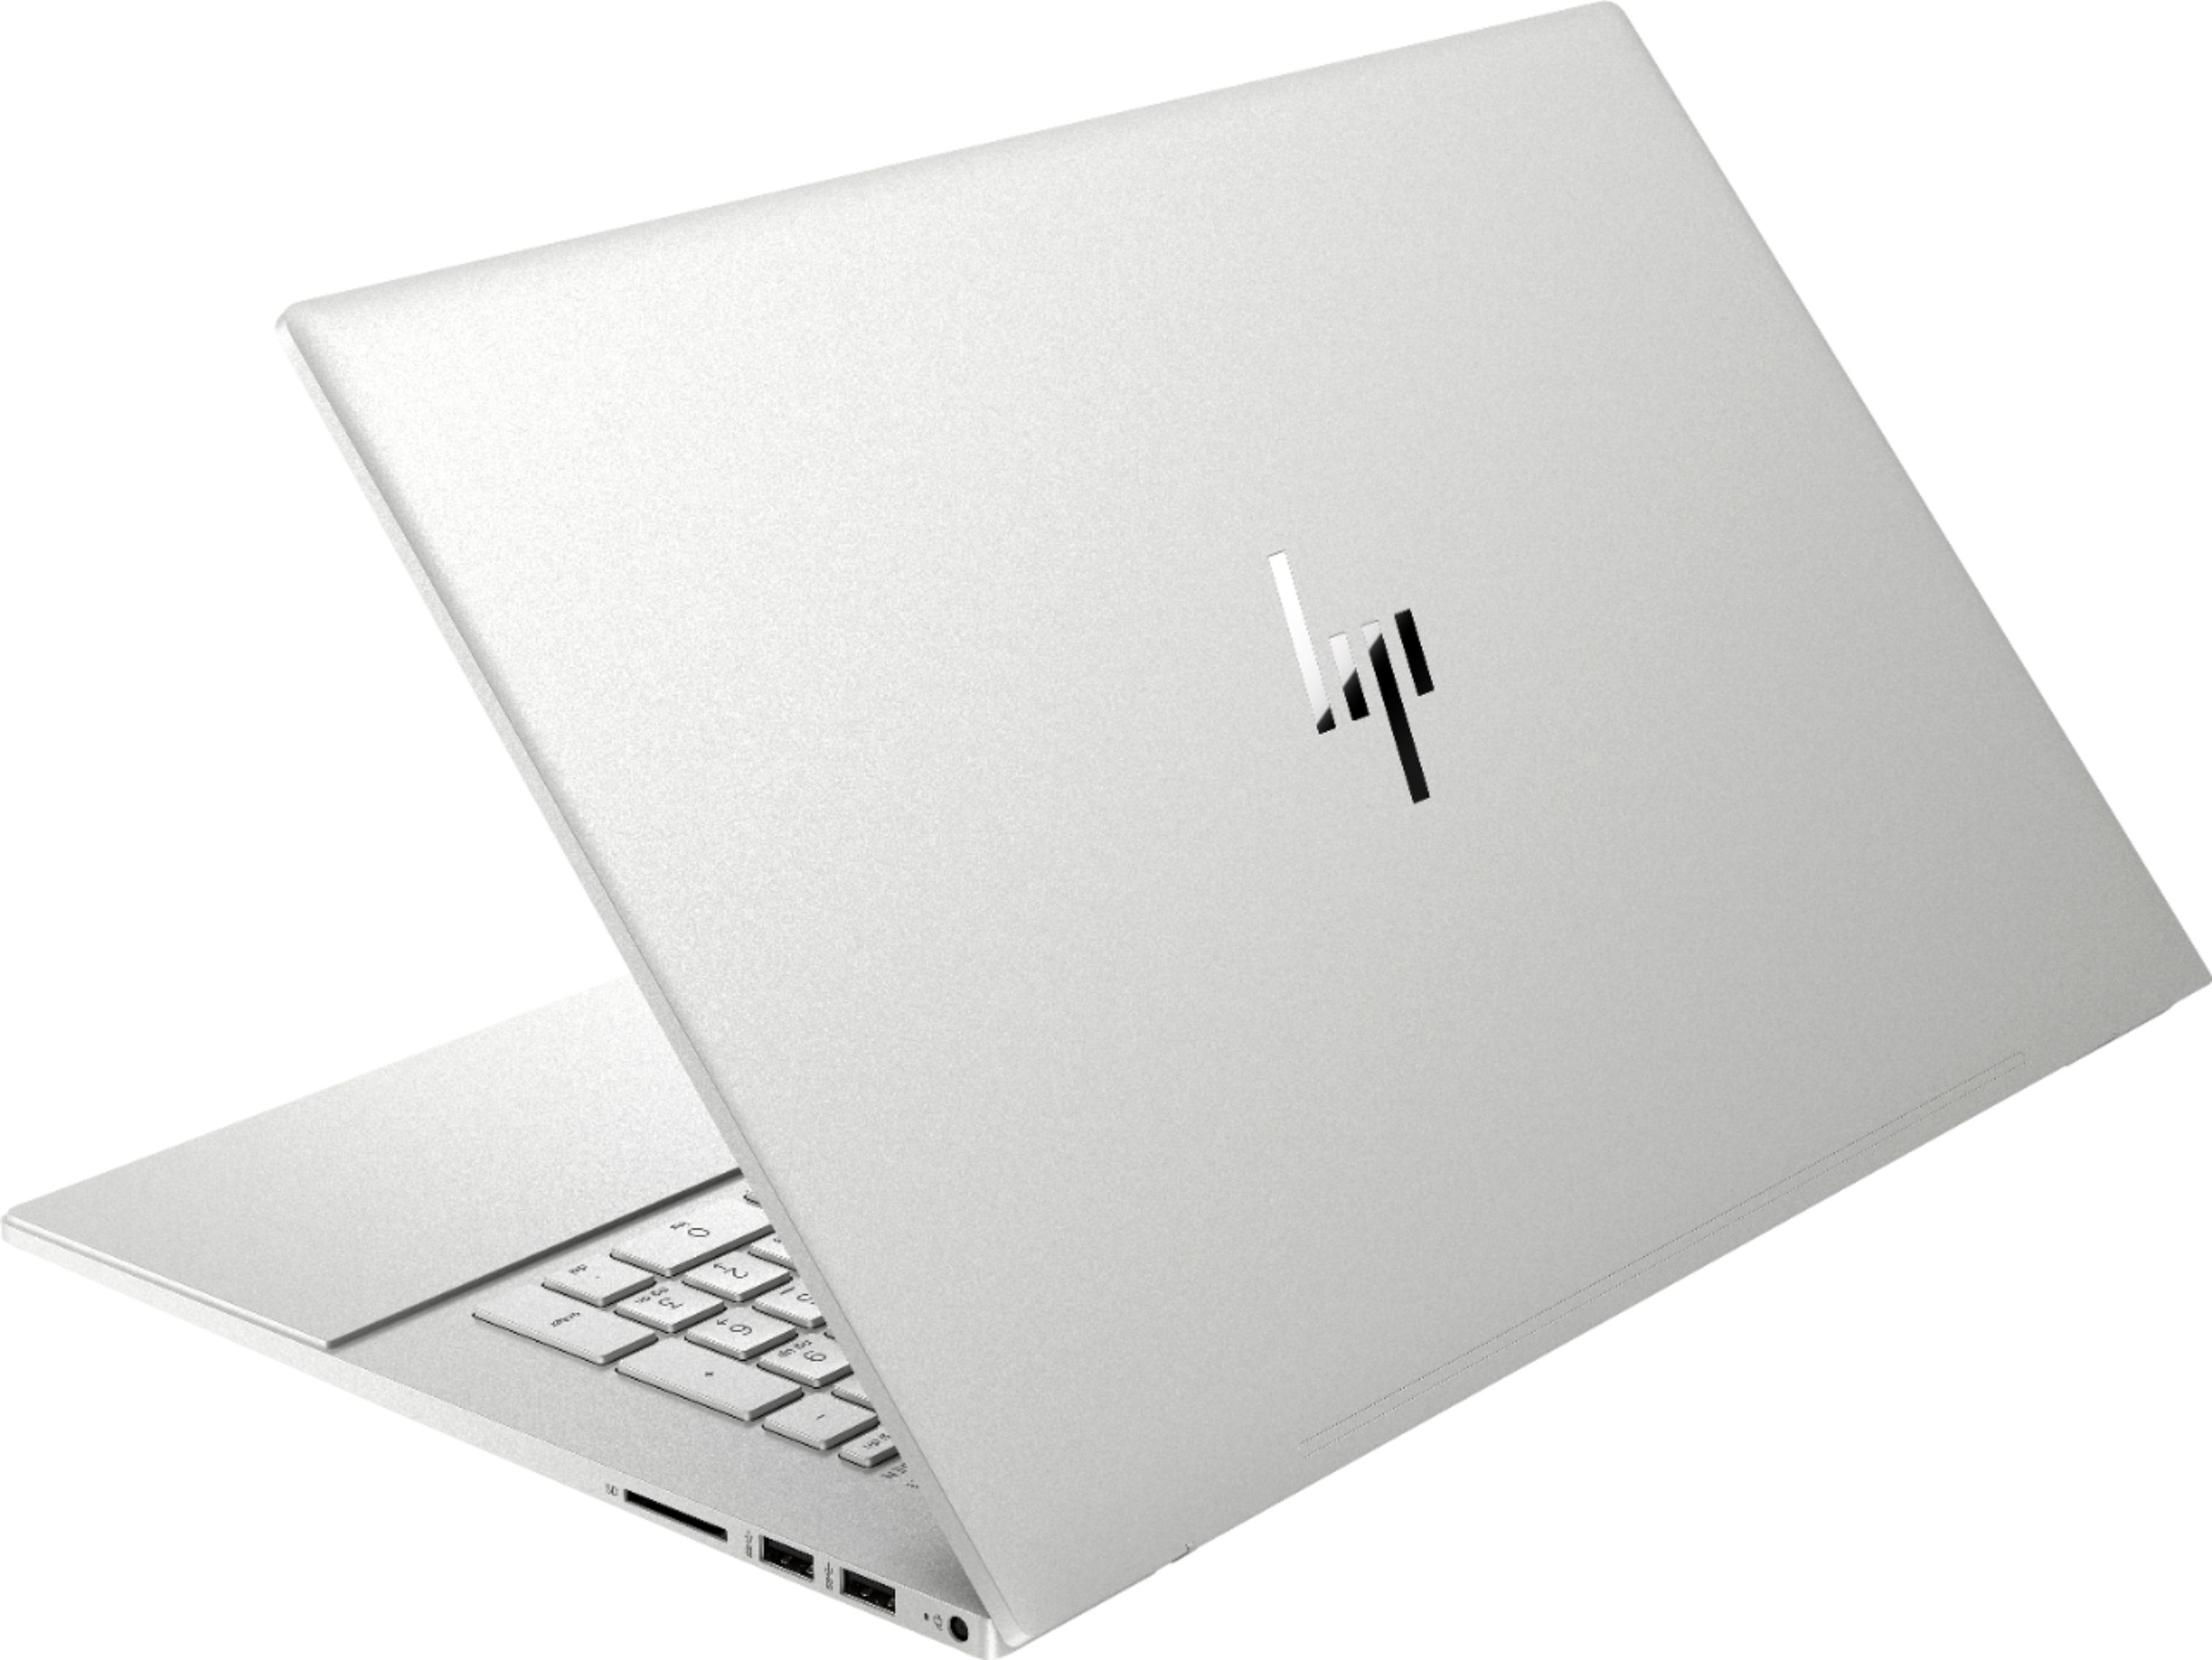 """Alt View Zoom 1. HP - ENVY 17.3"""" Touch-Screen Laptop - Intel Core i7 - 12GB Memory - 512GB SSD + 32GB Optane - Natural Silver."""